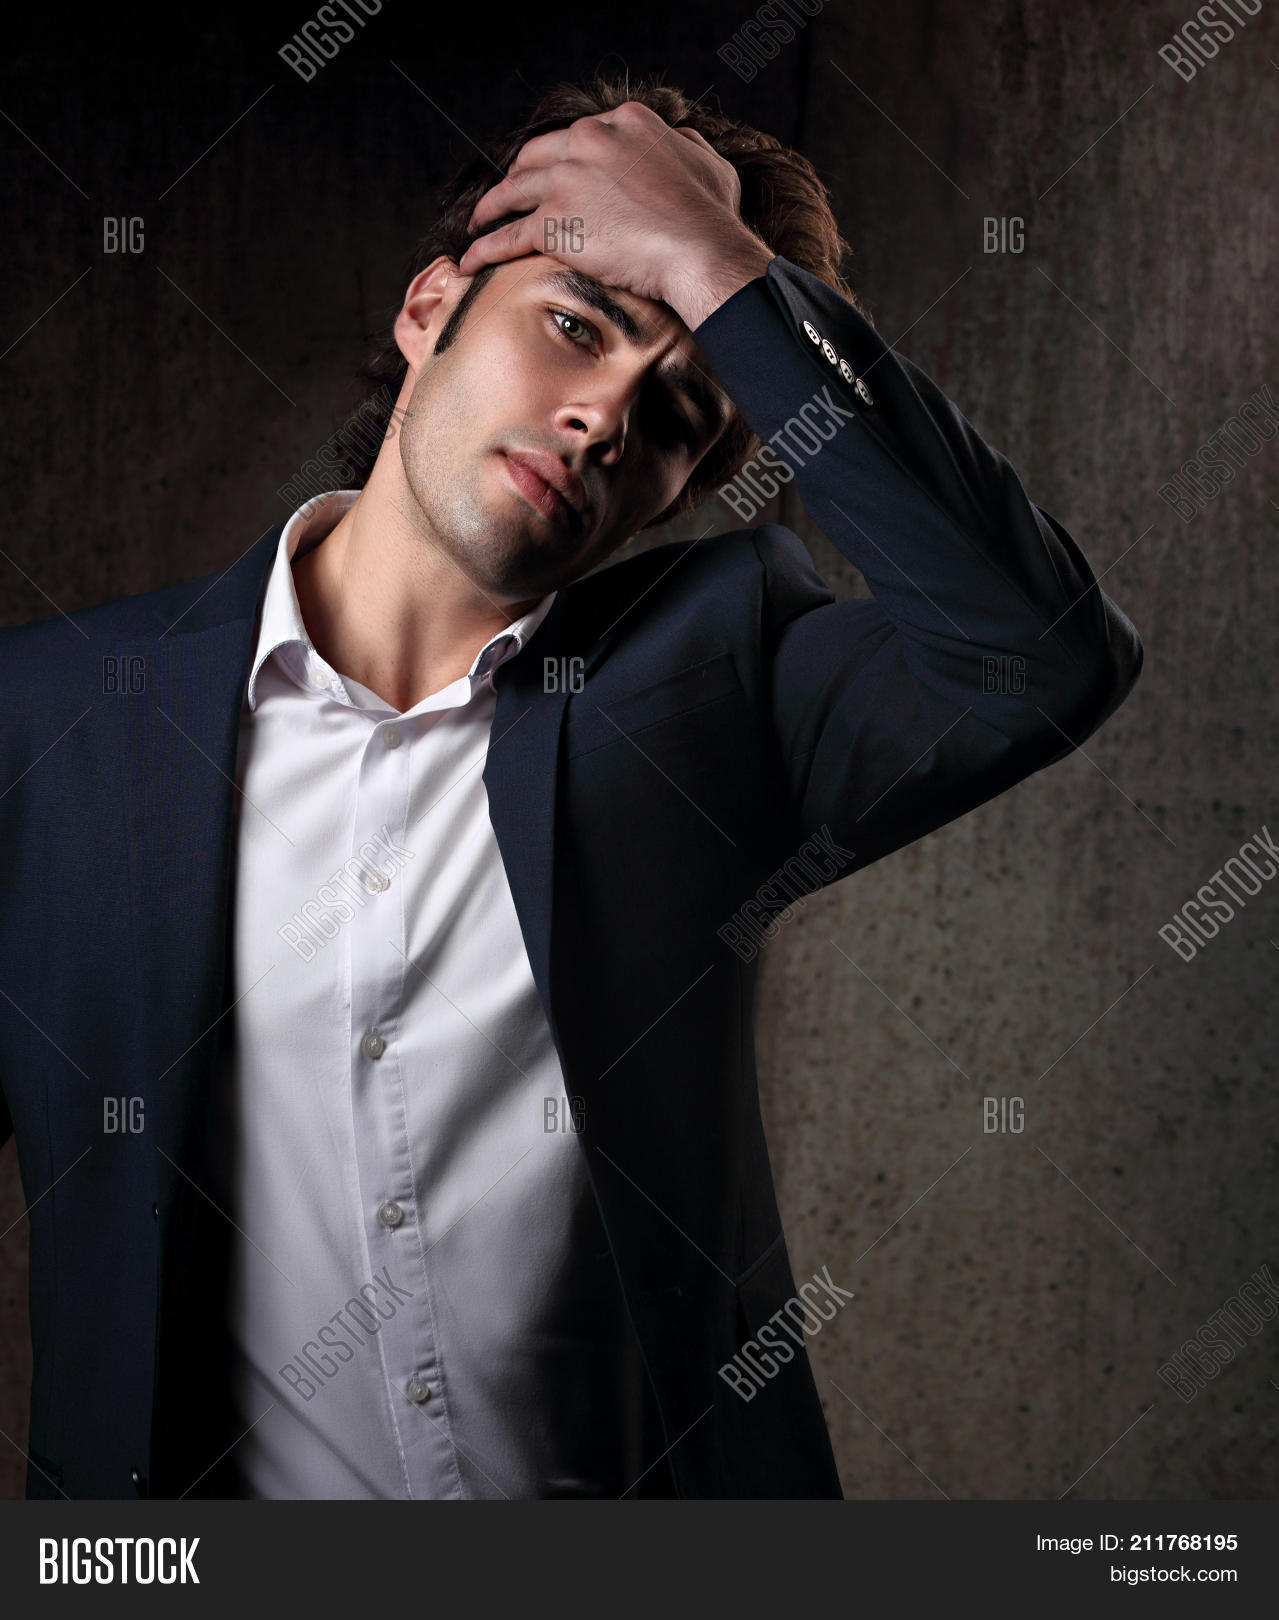 0968680e Charismatic handsome male model posing in blue fashion suit and white style  shirt looking on dark shadow background. Closeup portrait